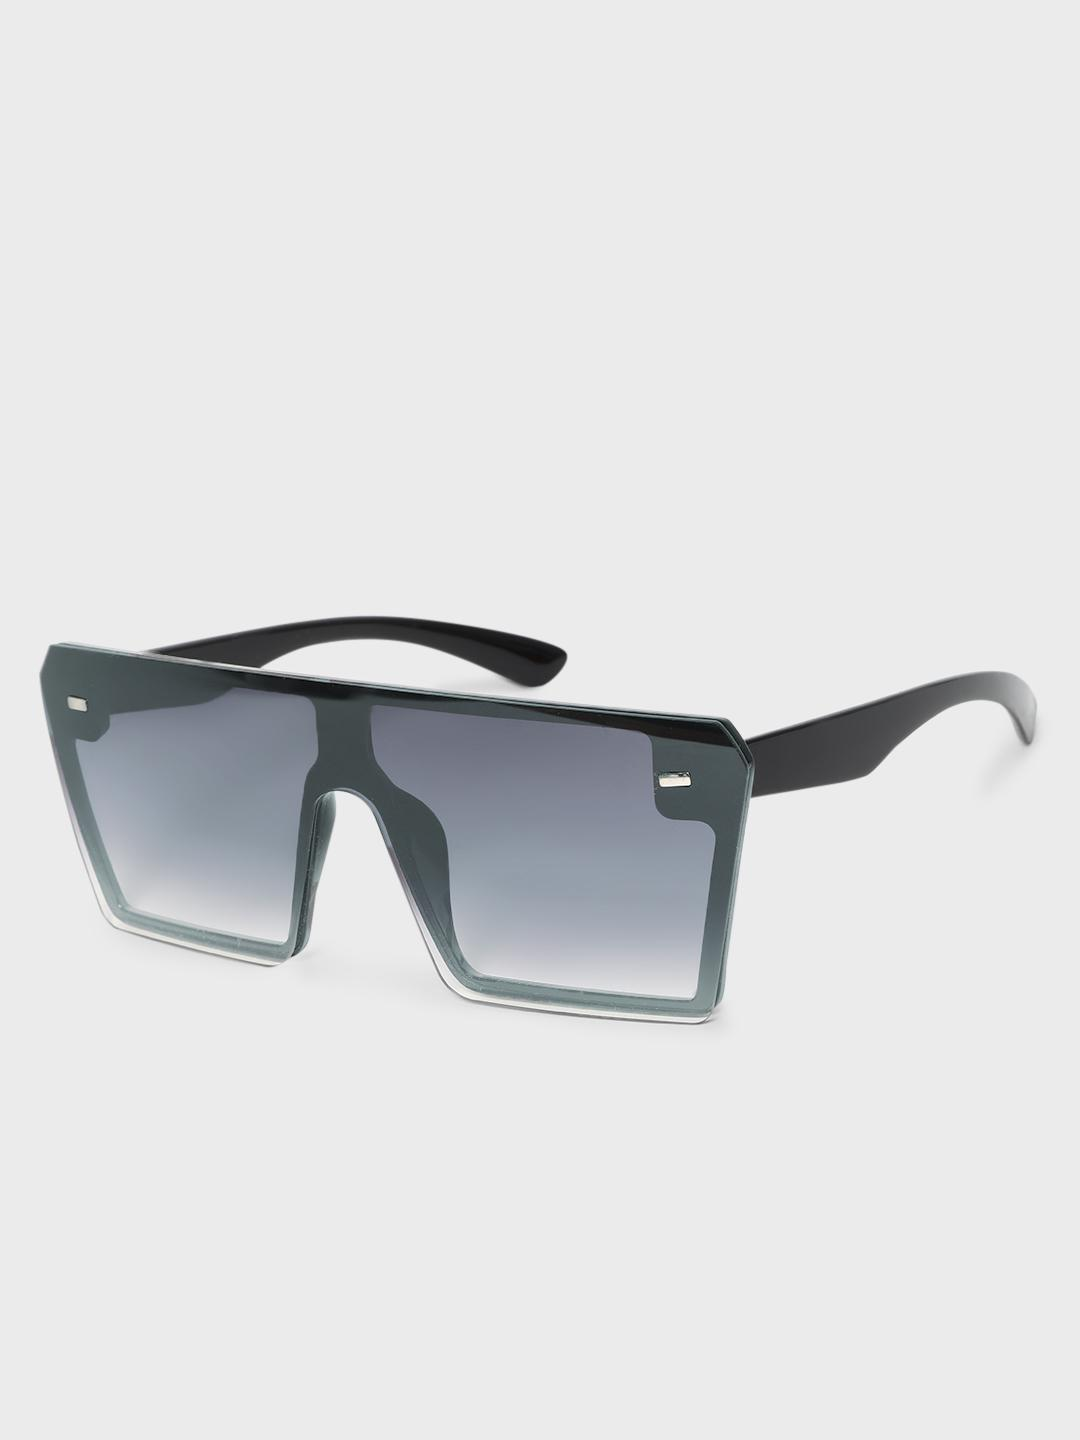 KOOVS Black Coloured Lens Square Sunglasses 1